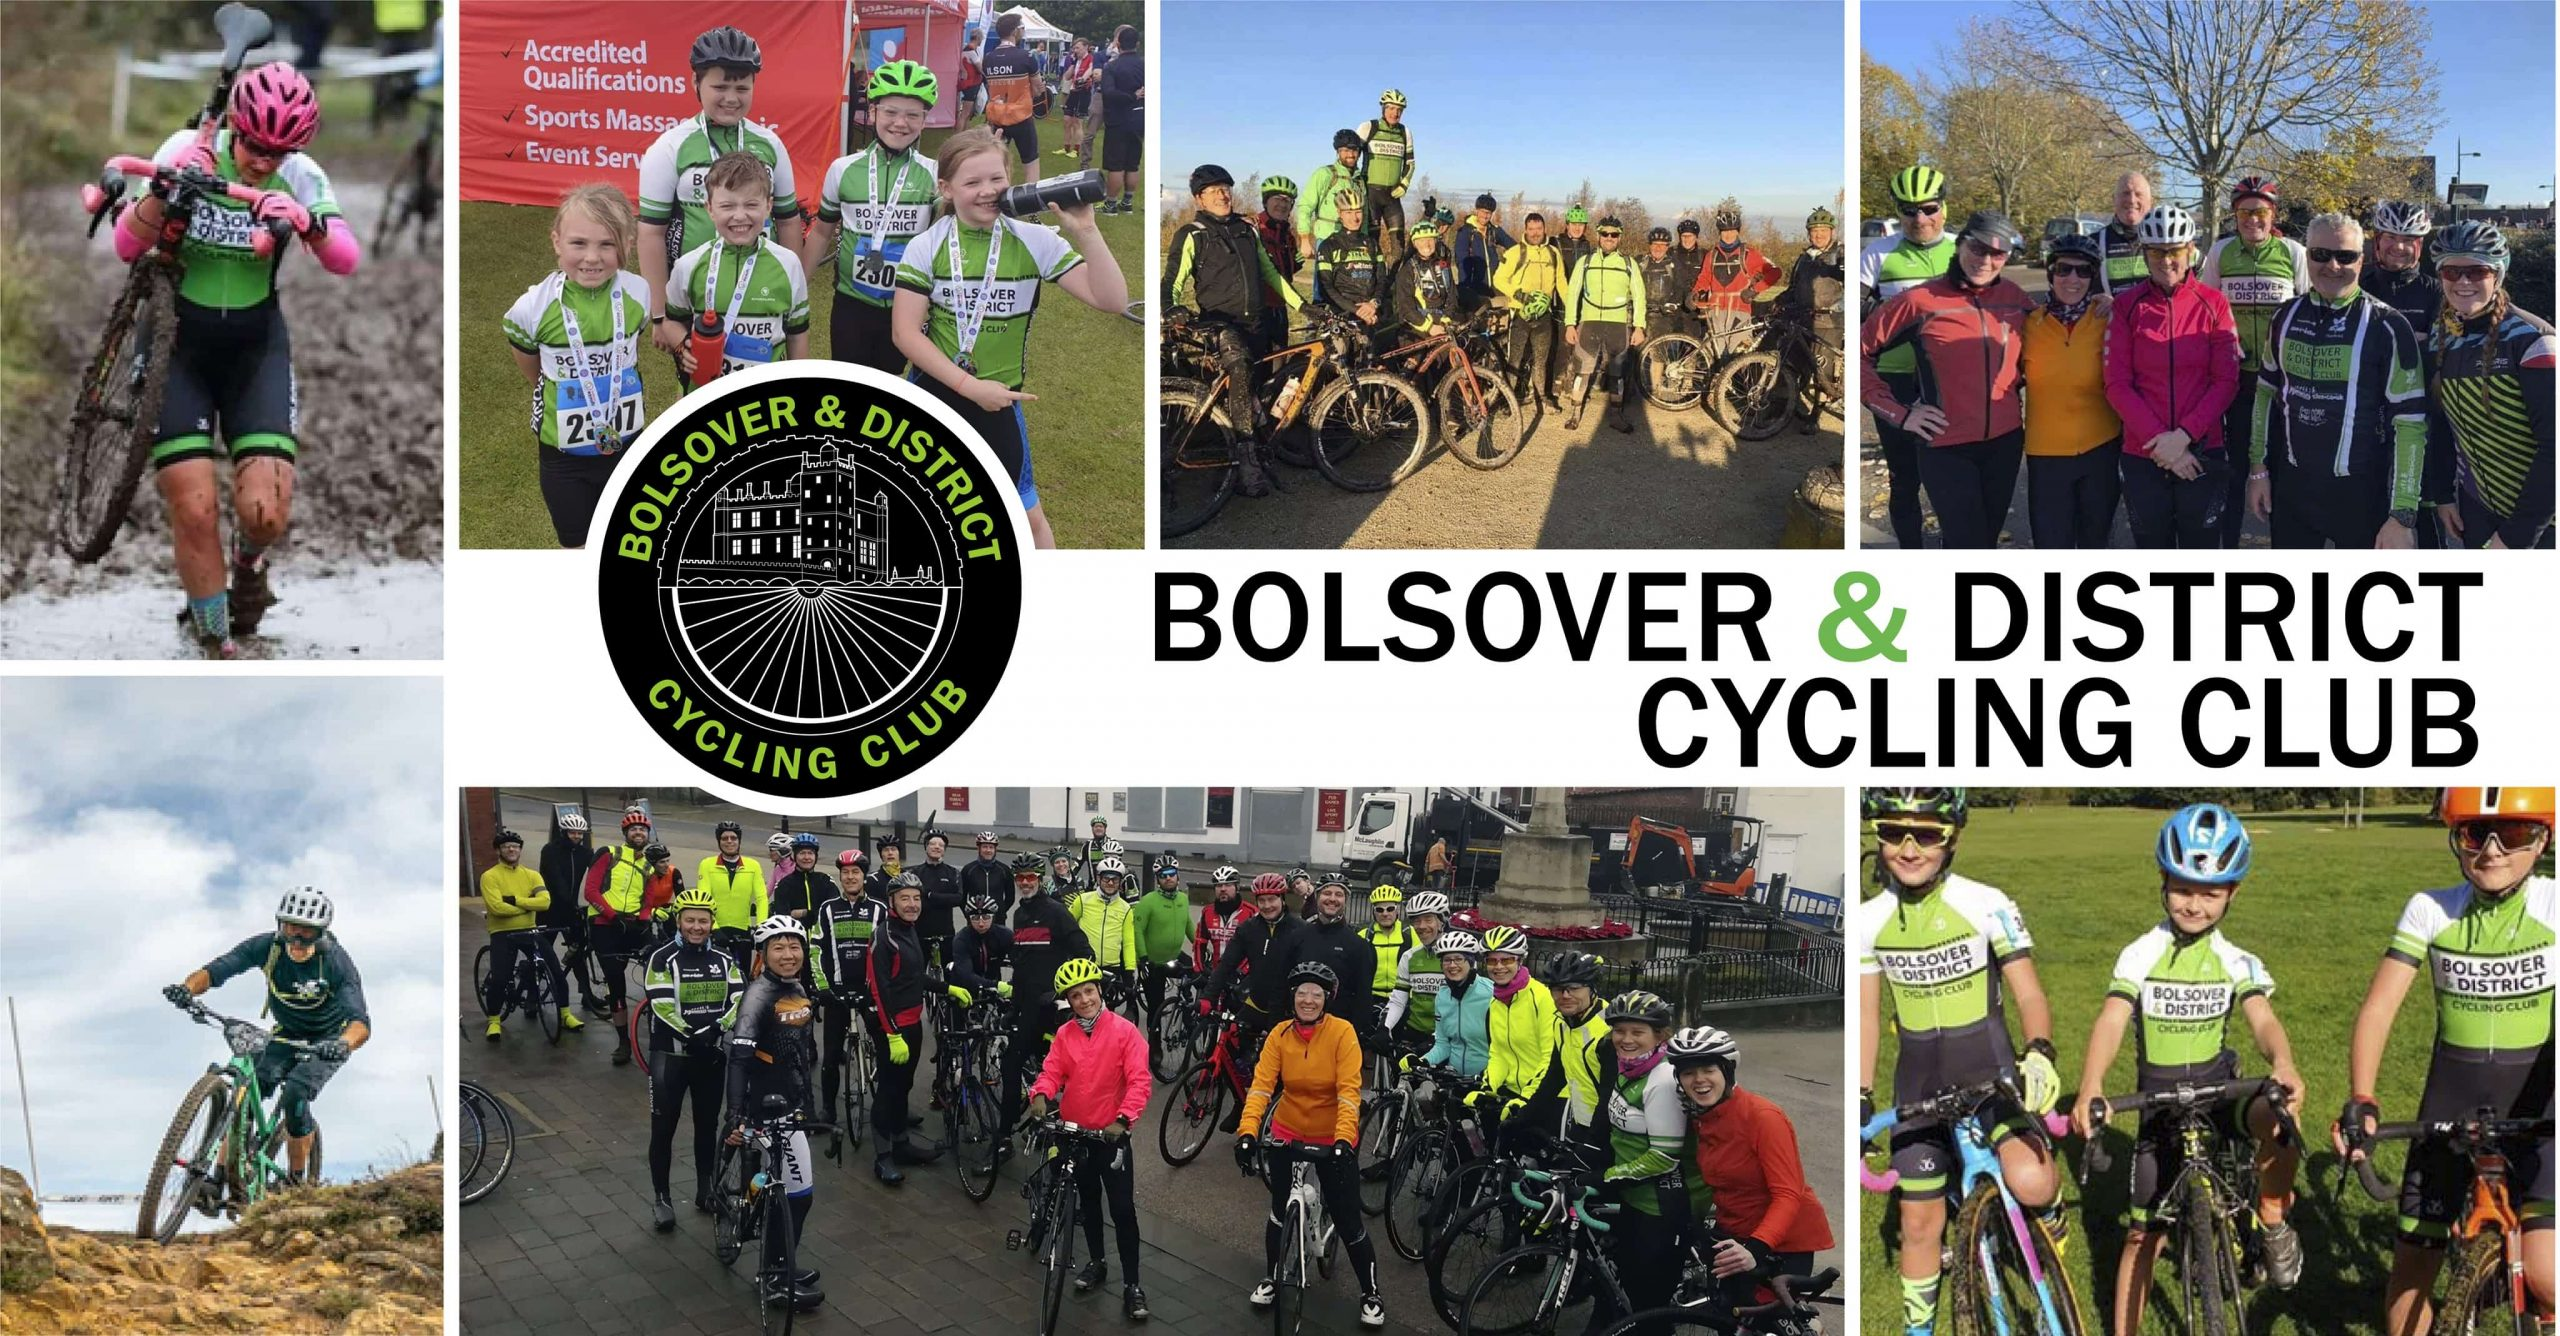 Bolsover and District Cycling Club - A Cycling Club For Everyone